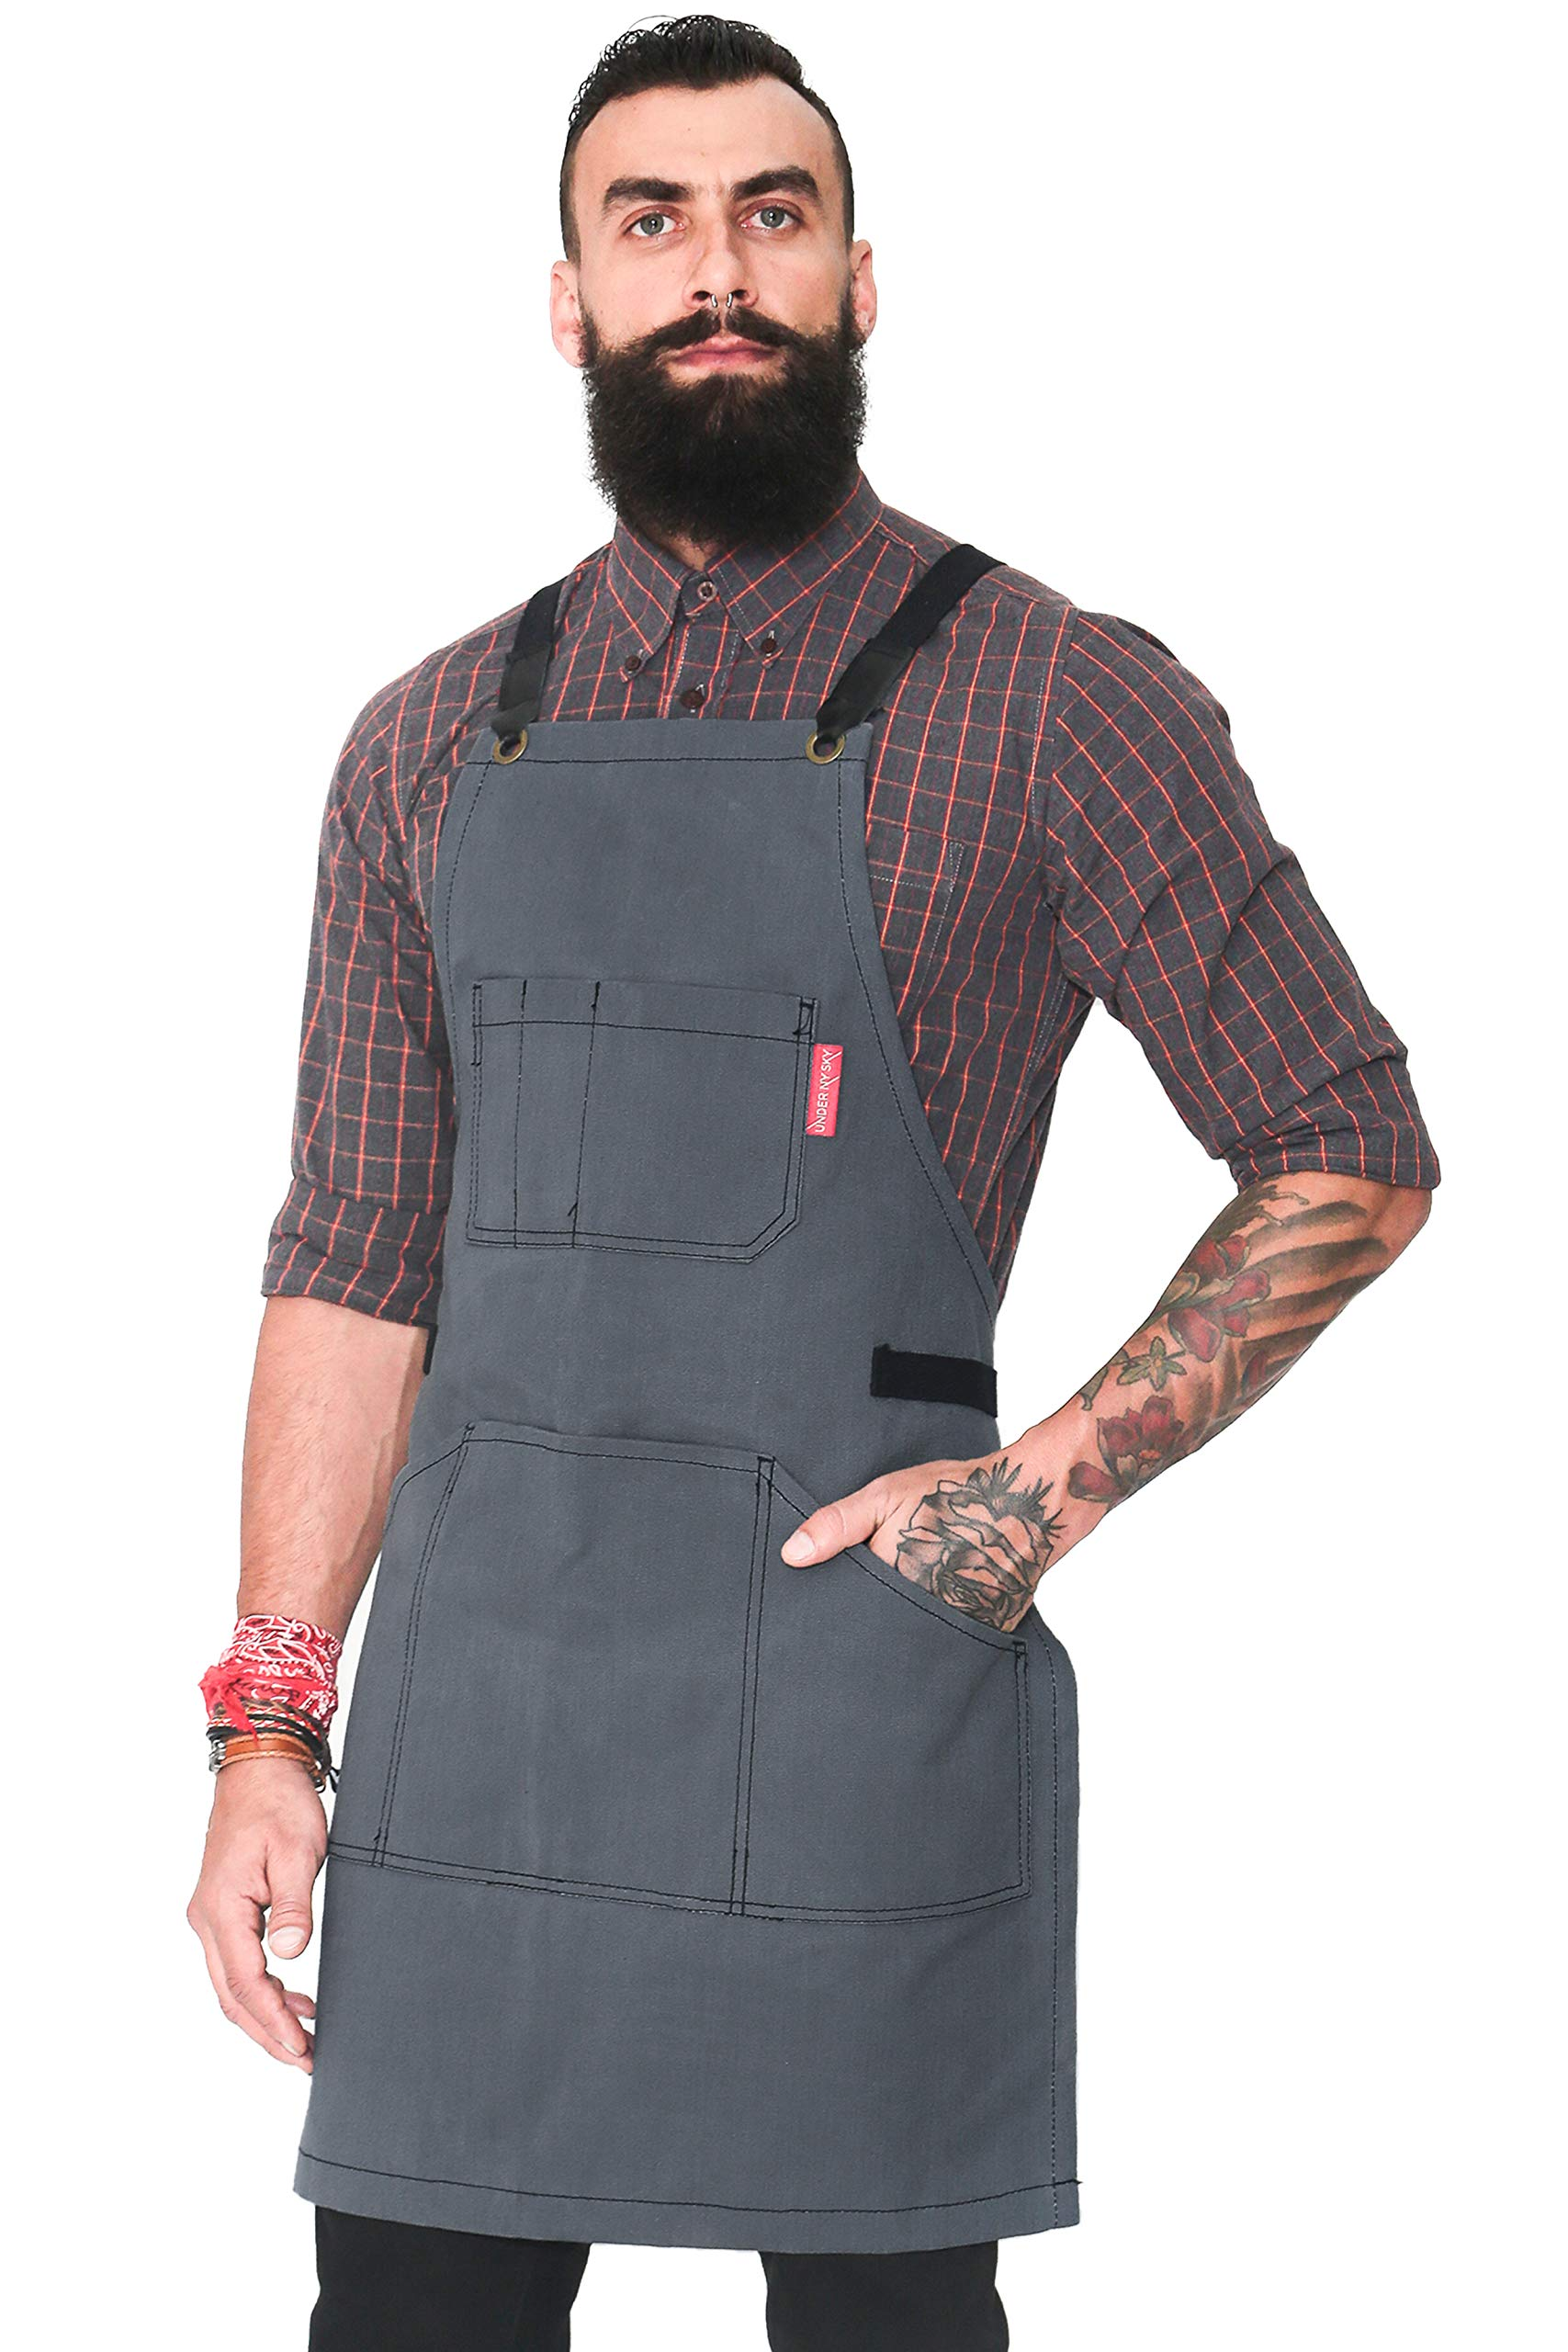 Under NY Sky Essential Gray Apron – Heavy Duty Waxed Canvas, Cross-Back with Split-Leg, Leather Reinforcement – Adjustable for Men and Women, Pro Mechanic, Welding, Woodwork, Blacksmith, Server Aprons